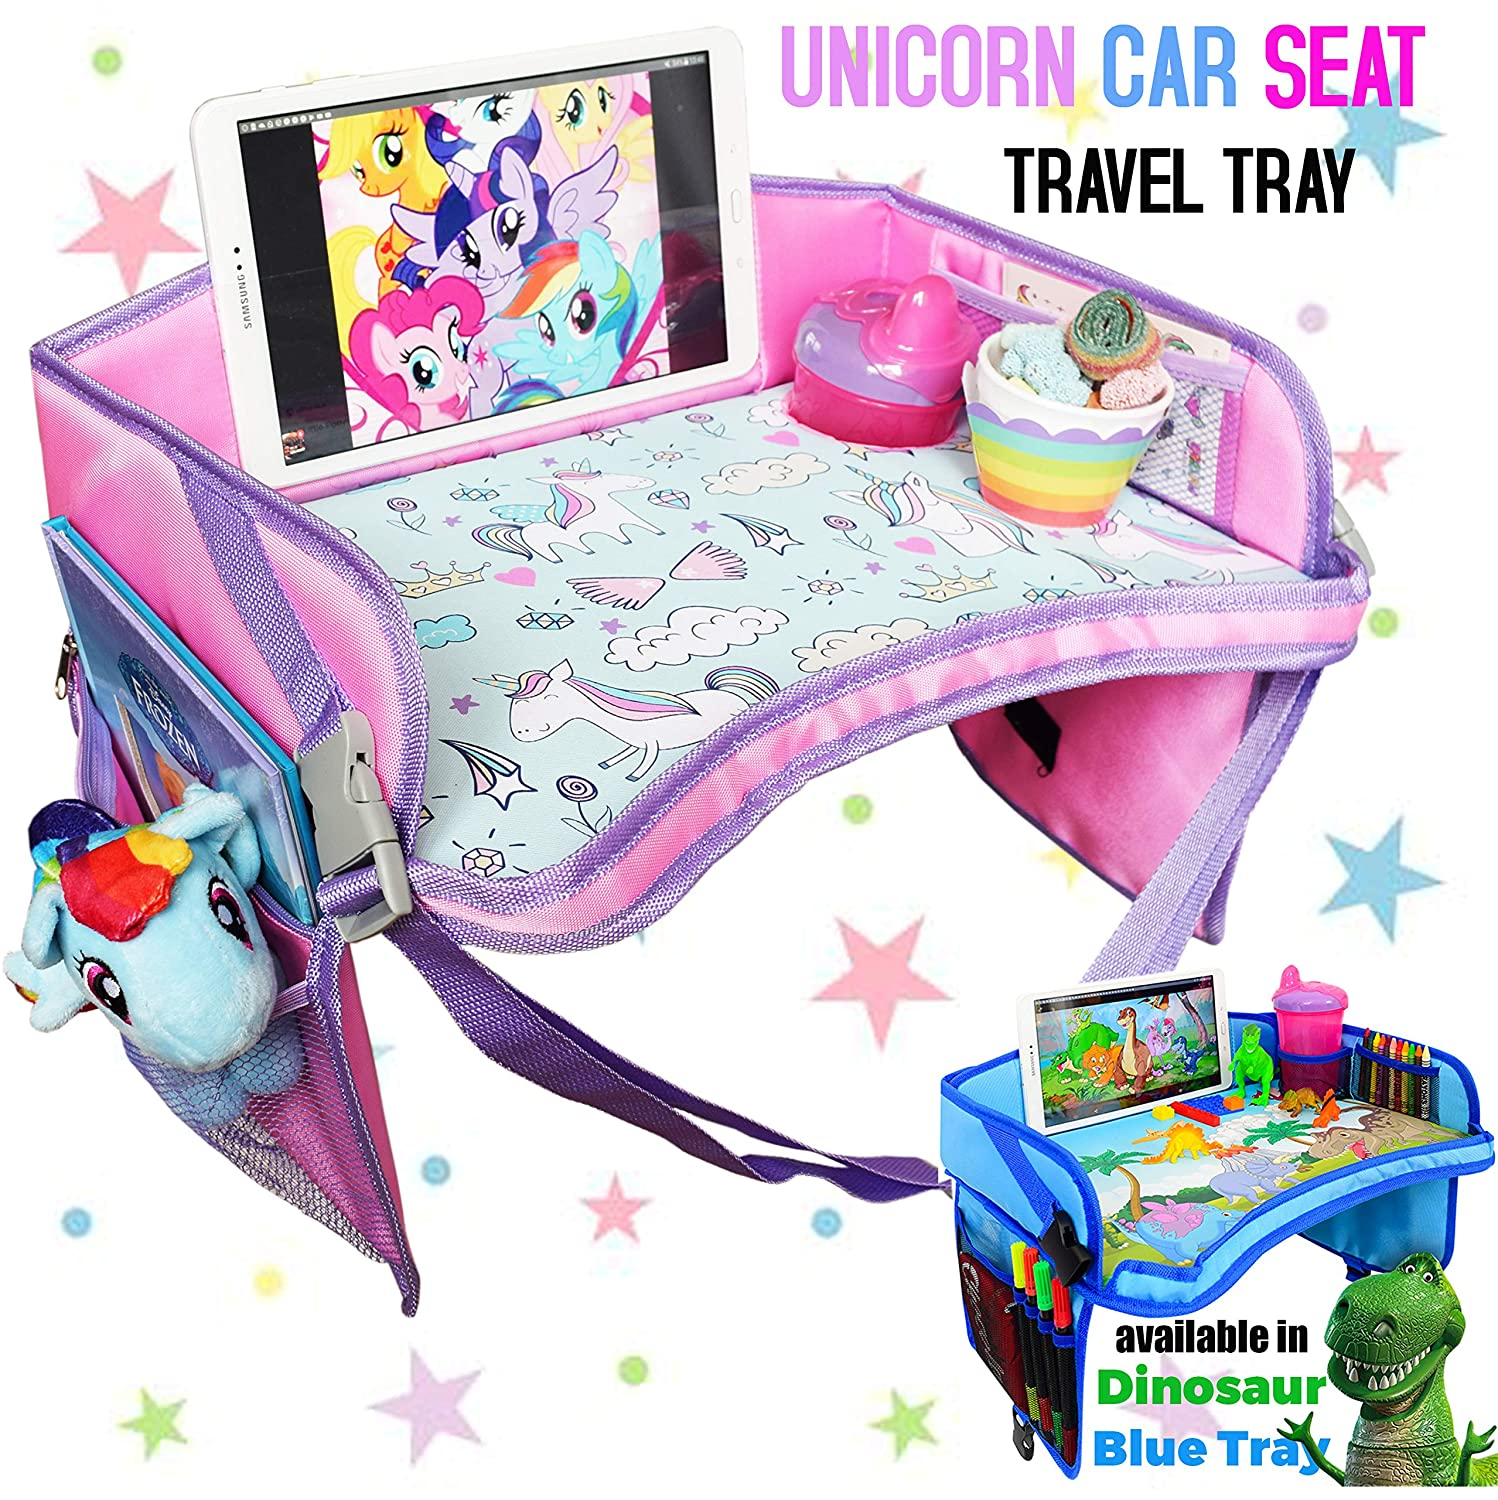 CarSeat Tray - Toddler Travel Tray Guaranteed to Keep Kids Occupied & Entertain for Hours